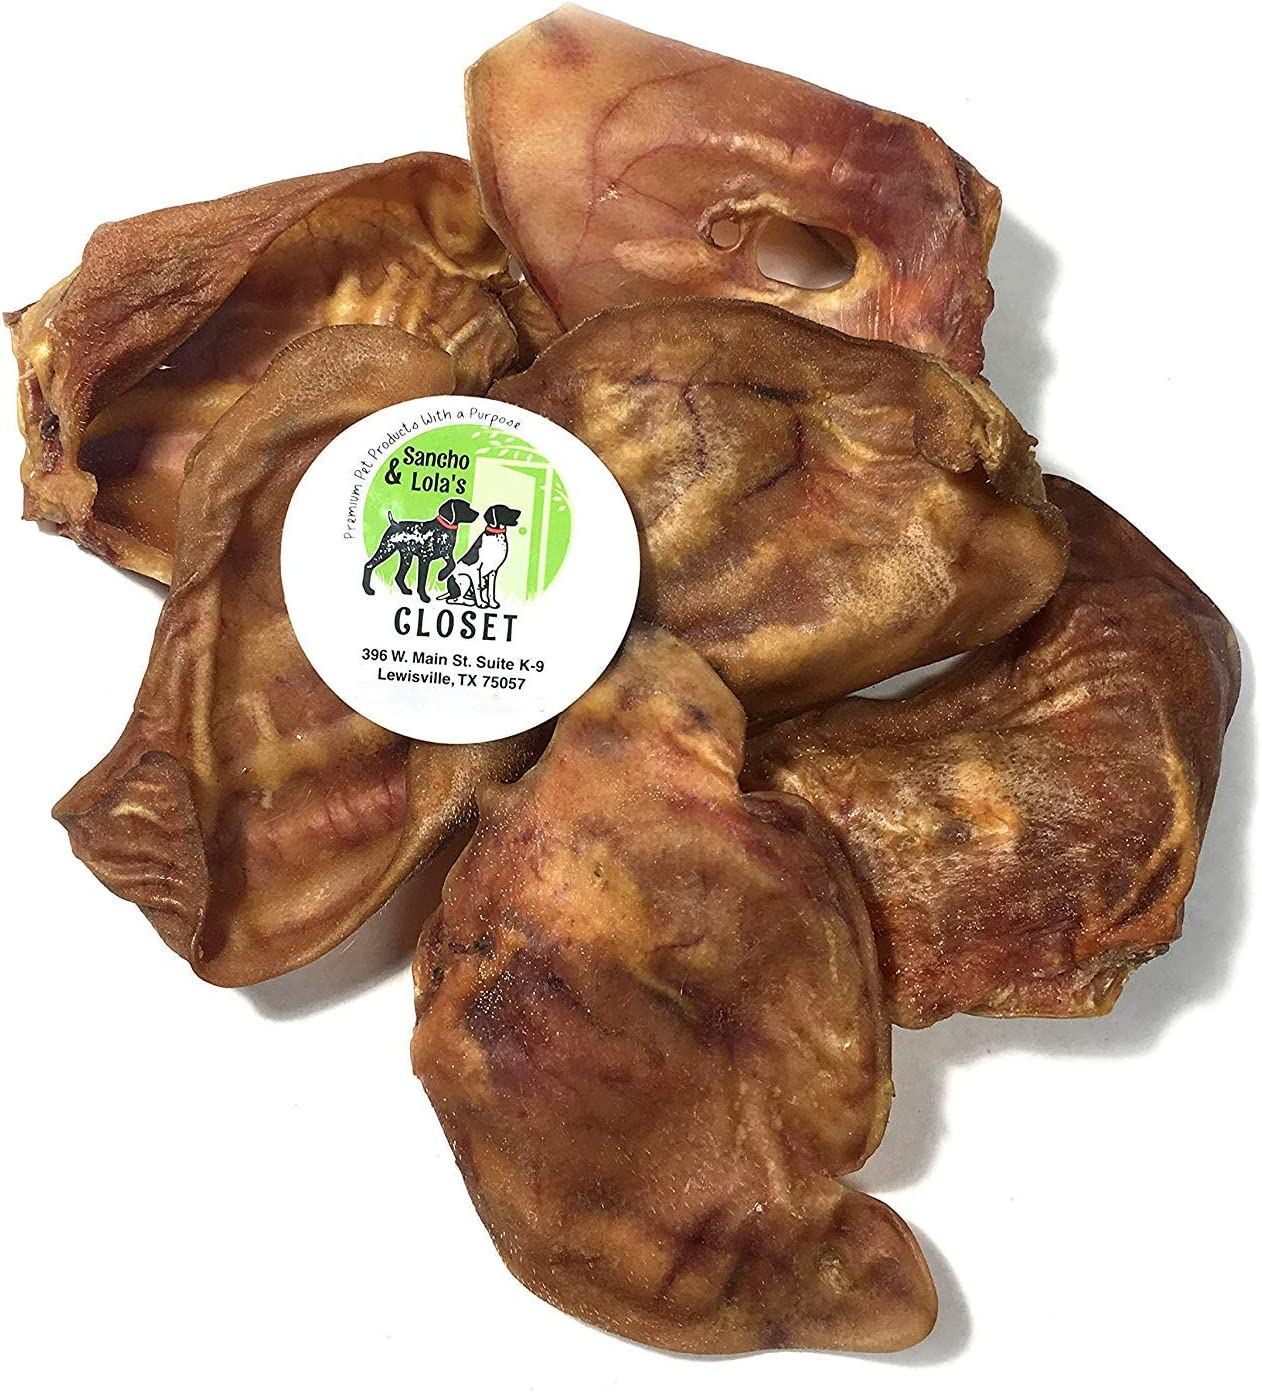 Sancho /& Lolas Pig Ears for Dogs 6-Count Grain-Free Collagen-Rich Ultra-Premium Dog Chews Made in The USA Maple-Smoked Thick-Cut Human-Grade